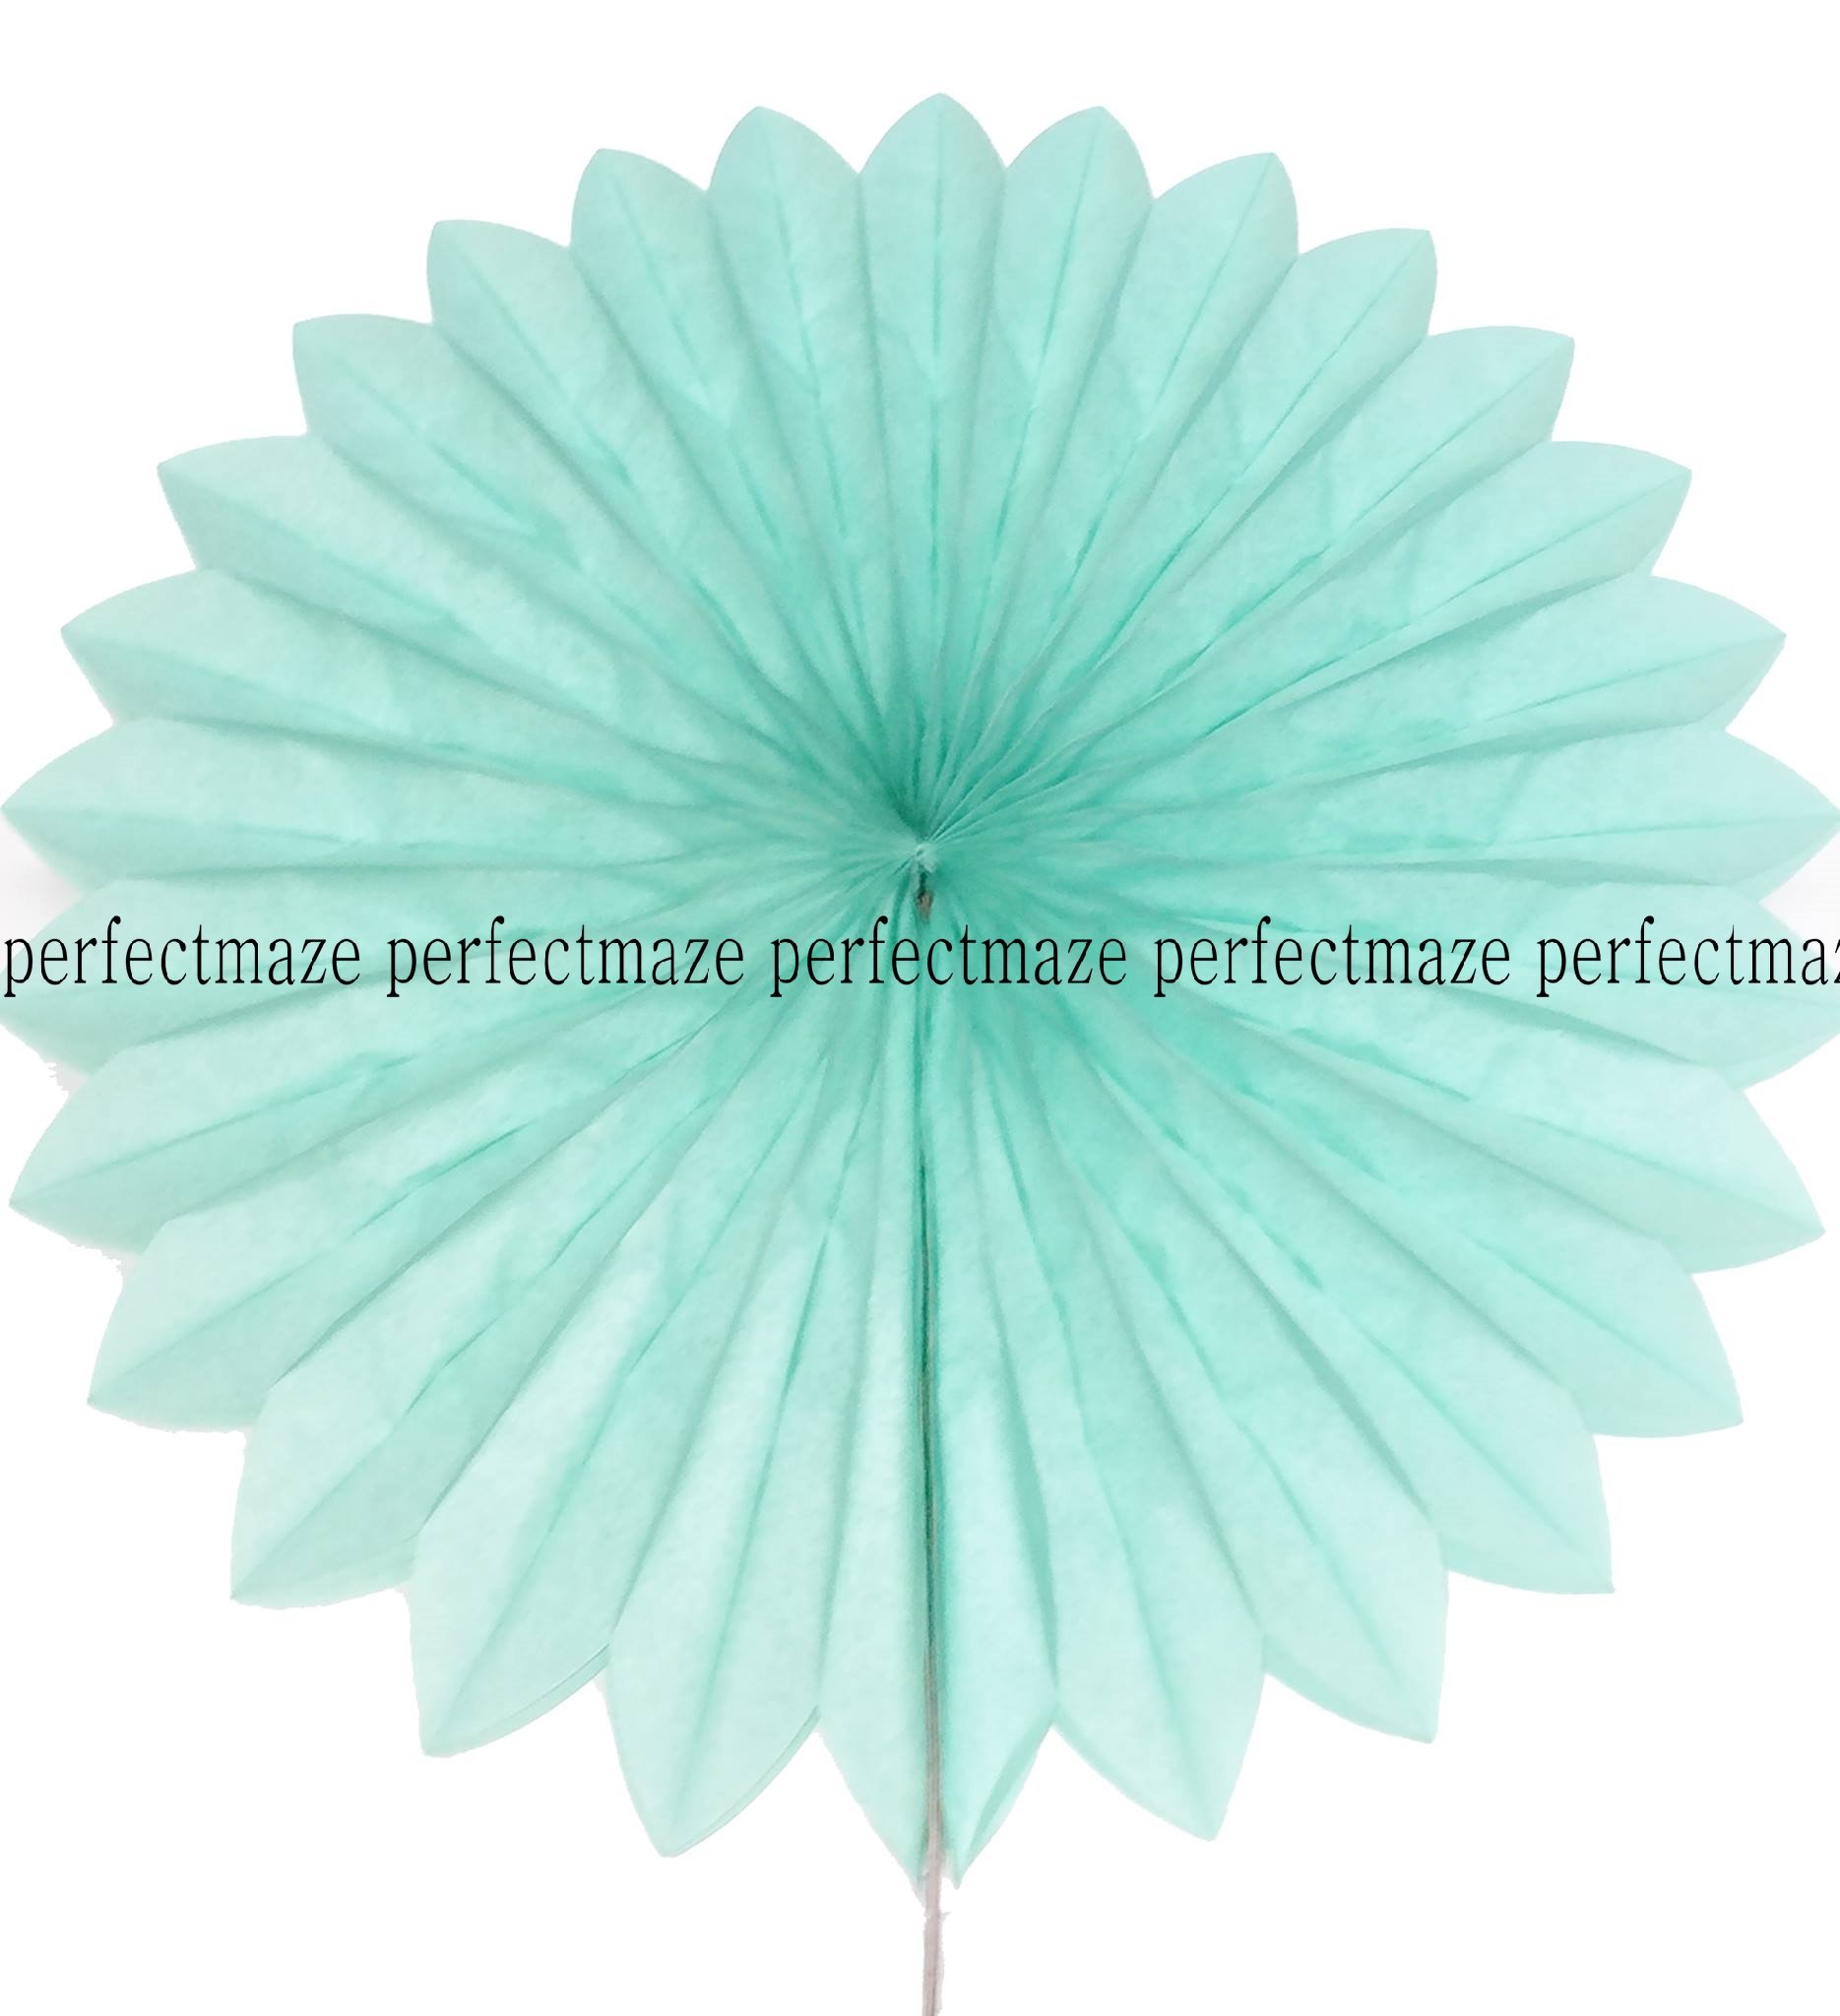 Perfectmaze 12 Piece 10 Inch Tissue Paper Pinwheel Hanging Fan for Wedding Party Engagement Baby Shower Decoration (Tiffany Mint)